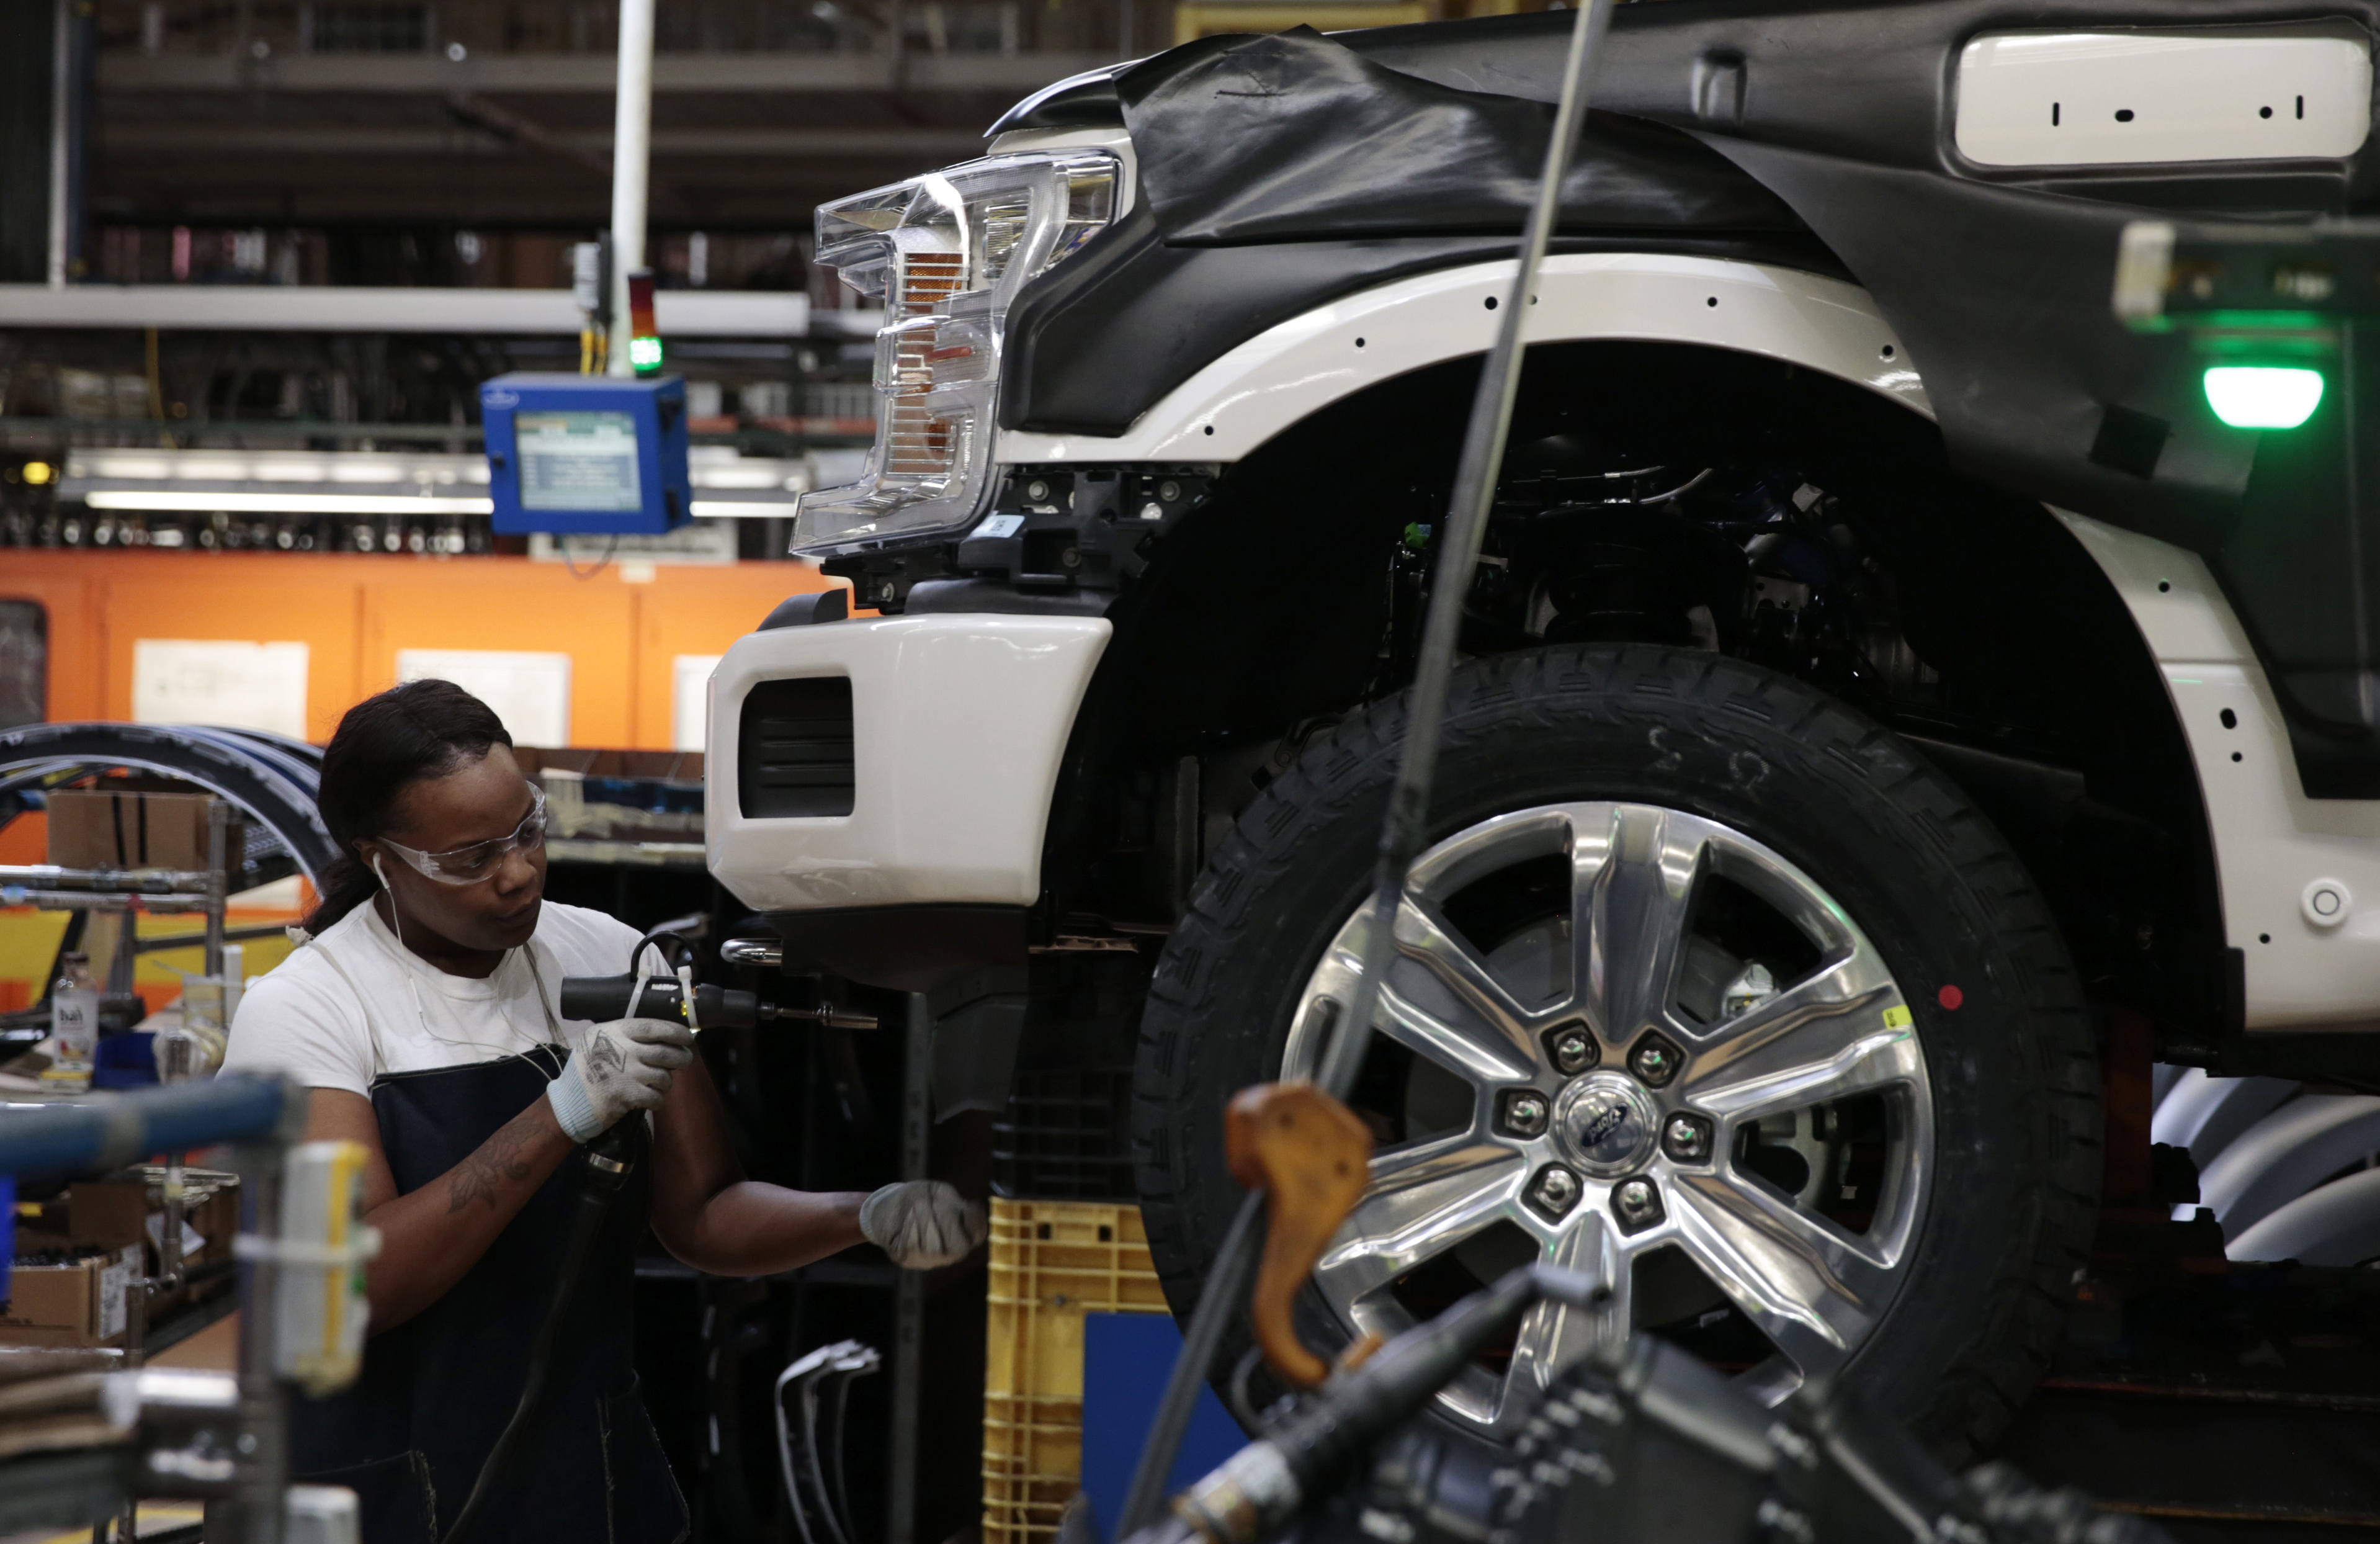 A factory worker adds something to the front fender on a partially finished white truck.